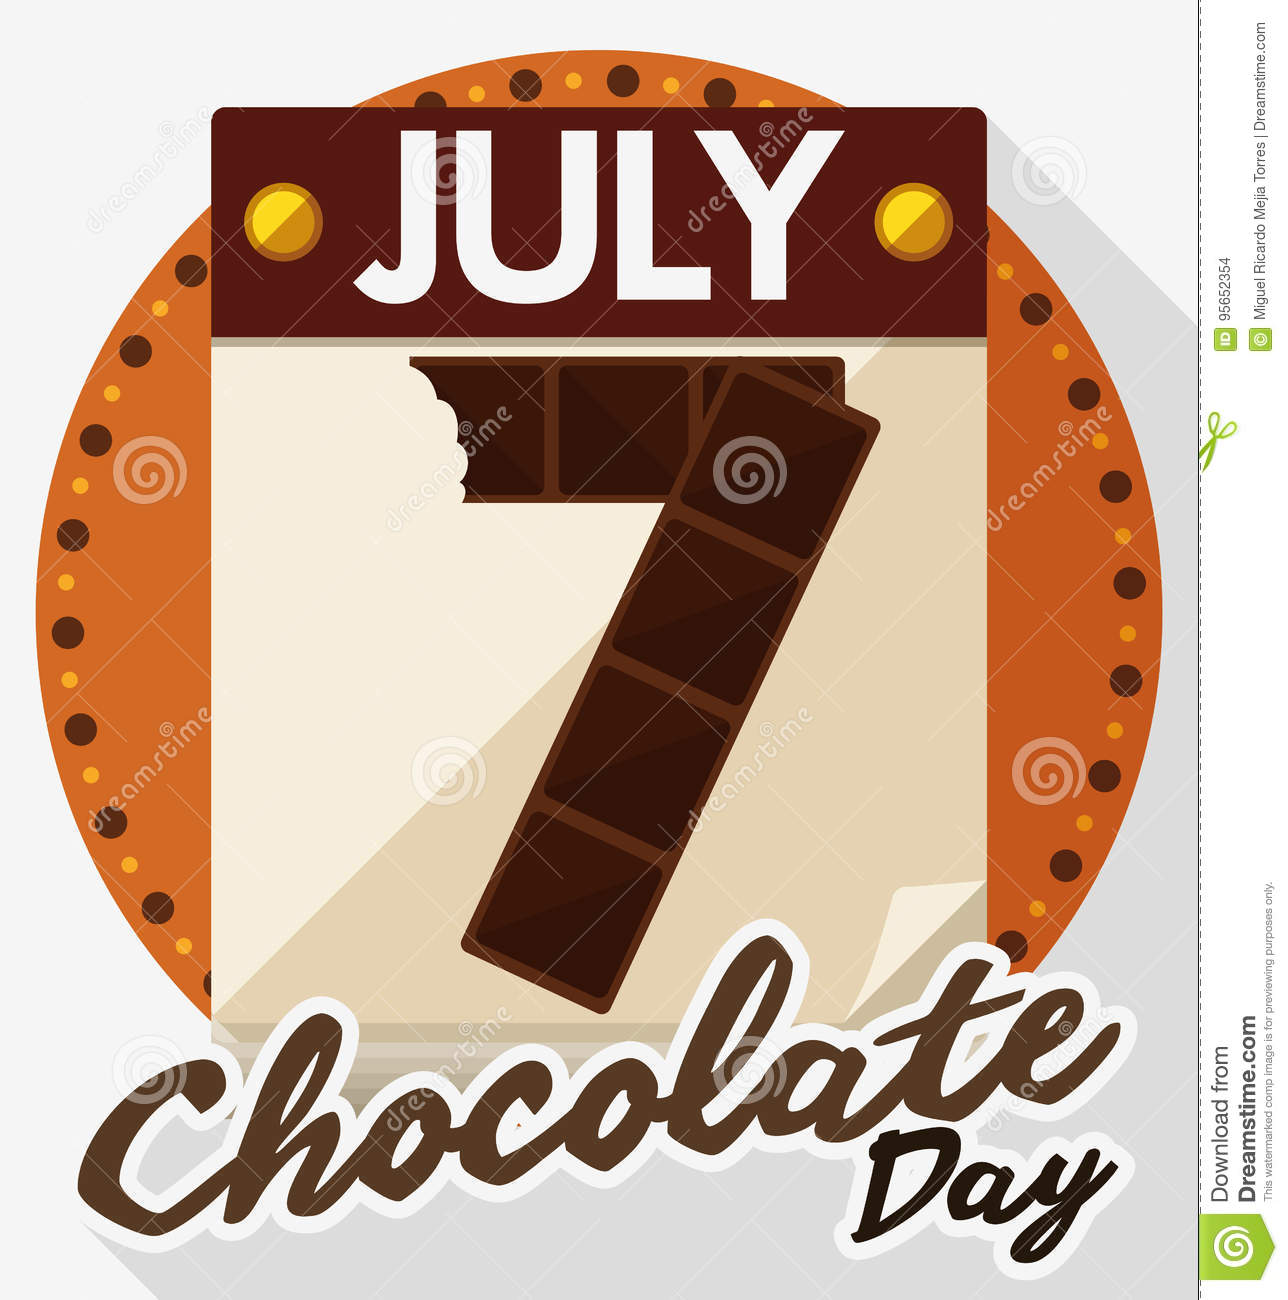 what is the date of chocolate day